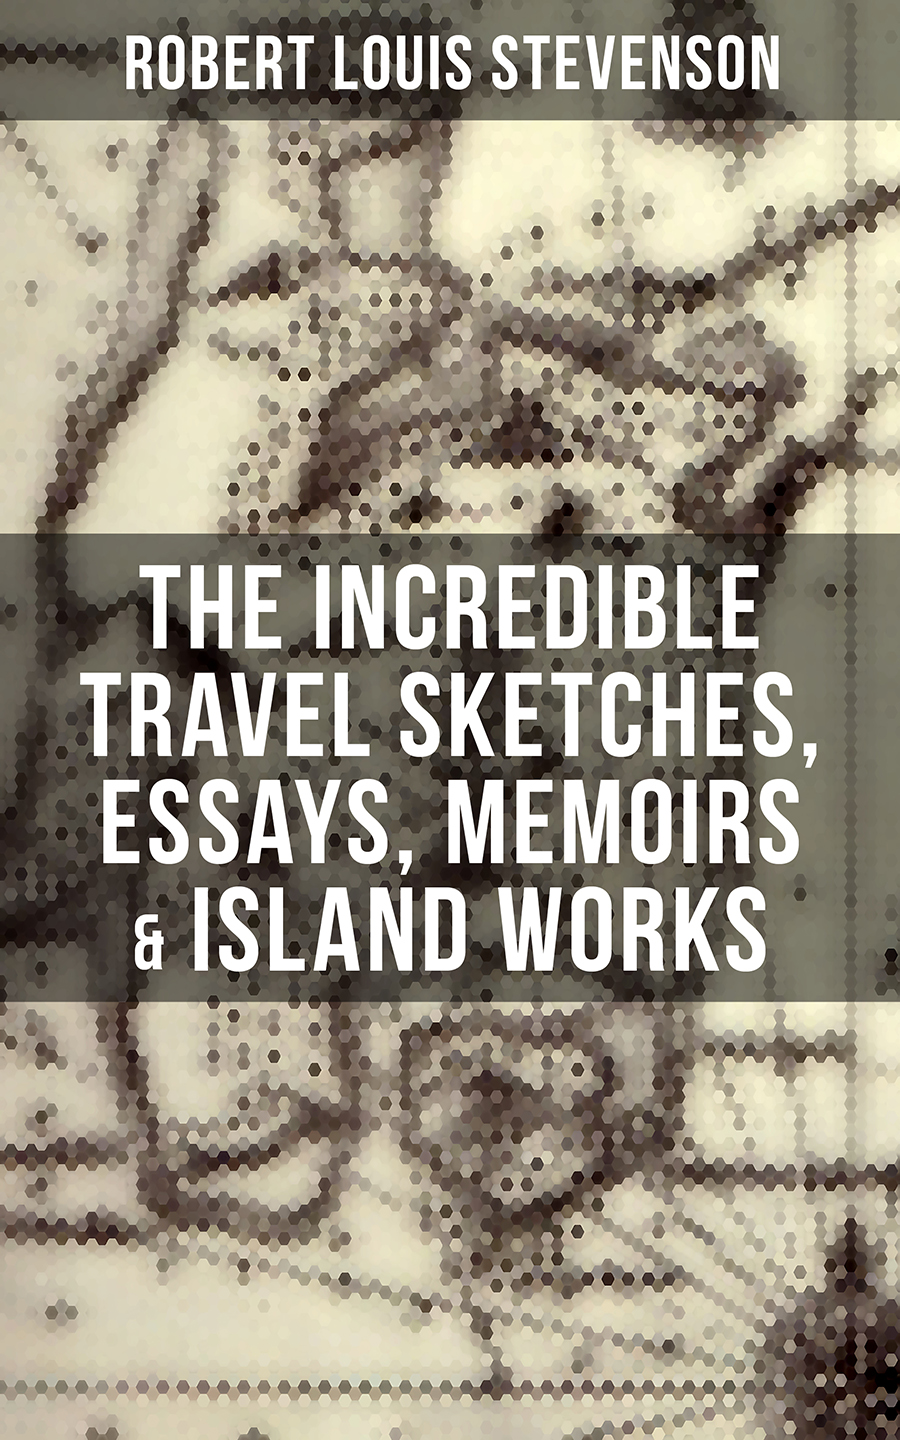 лучшая цена Robert Louis Stevenson The Incredible Travel Sketches, Essays, Memoirs & Island Works of R. L. Stevenson